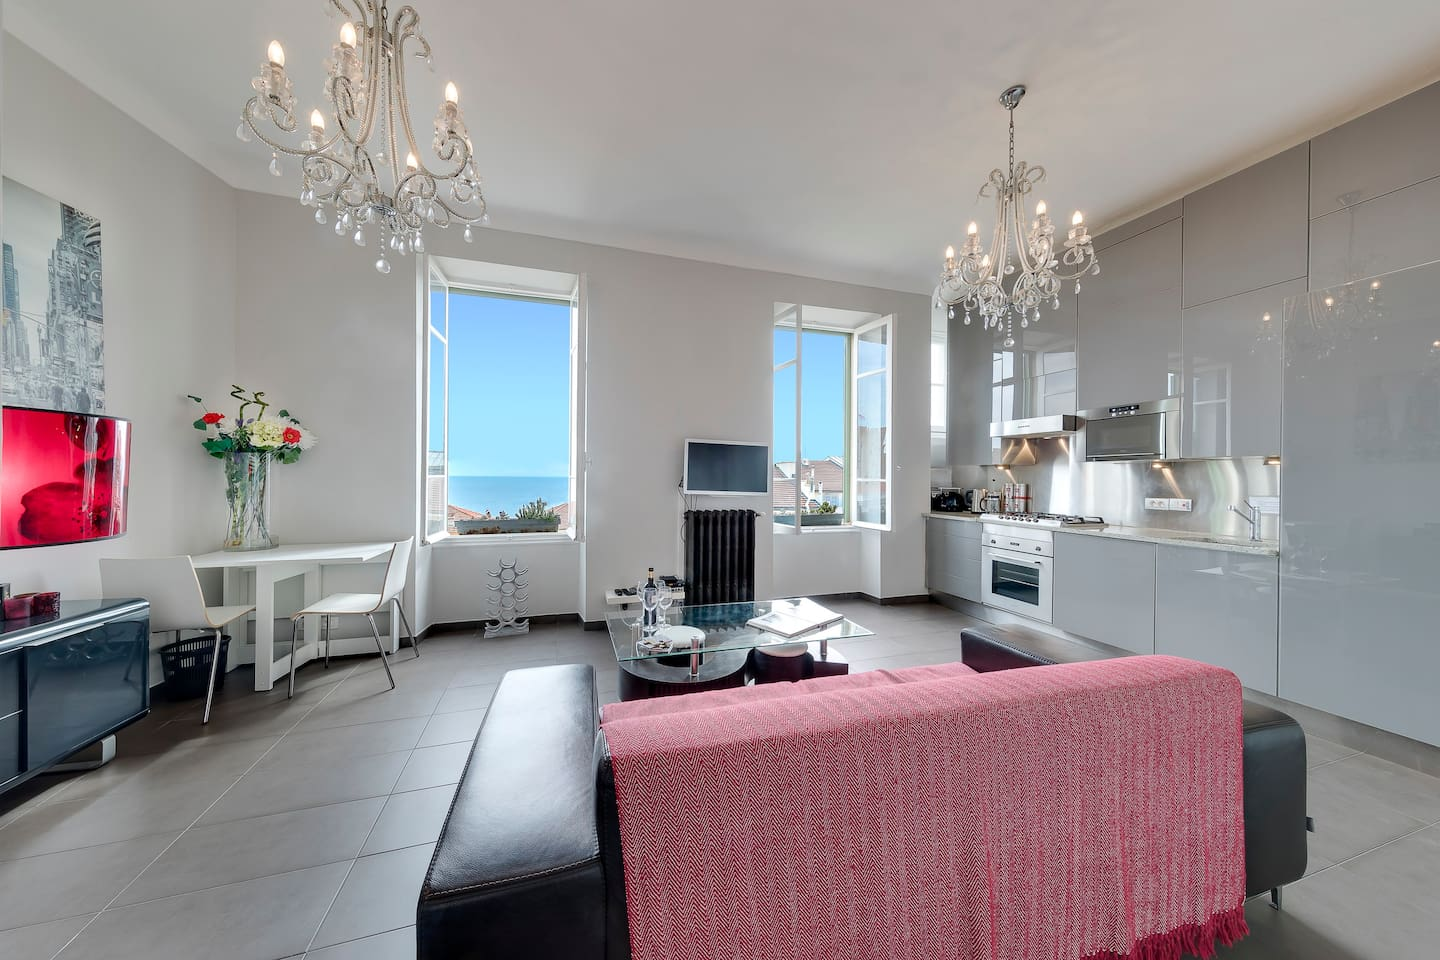 Light and airy the apartment is neutrally decorated. Five minutes walk from the  Cafe de Paris, famous Casino and centre of Monte Carlo. 12 minutes walk to Grimaldi Forum and Larvotto beach! Supermarket, restaurants, cafes on your doorstep. WIFI!